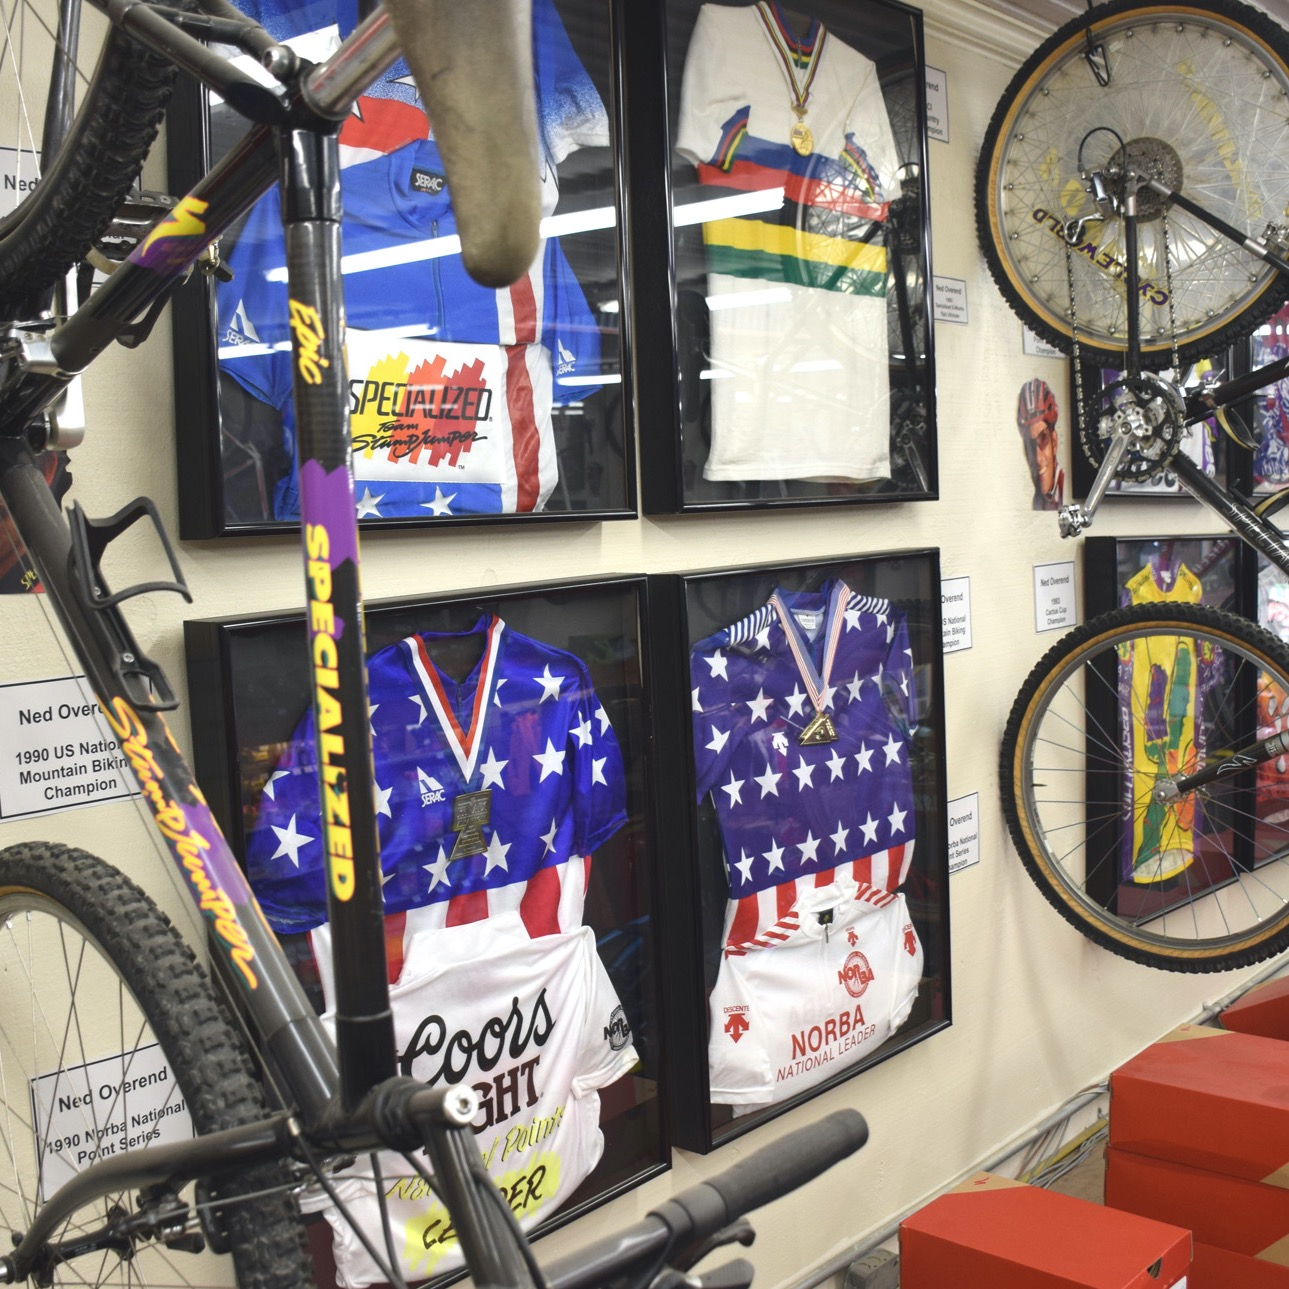 Ned Overend's championship bikes and jerseys